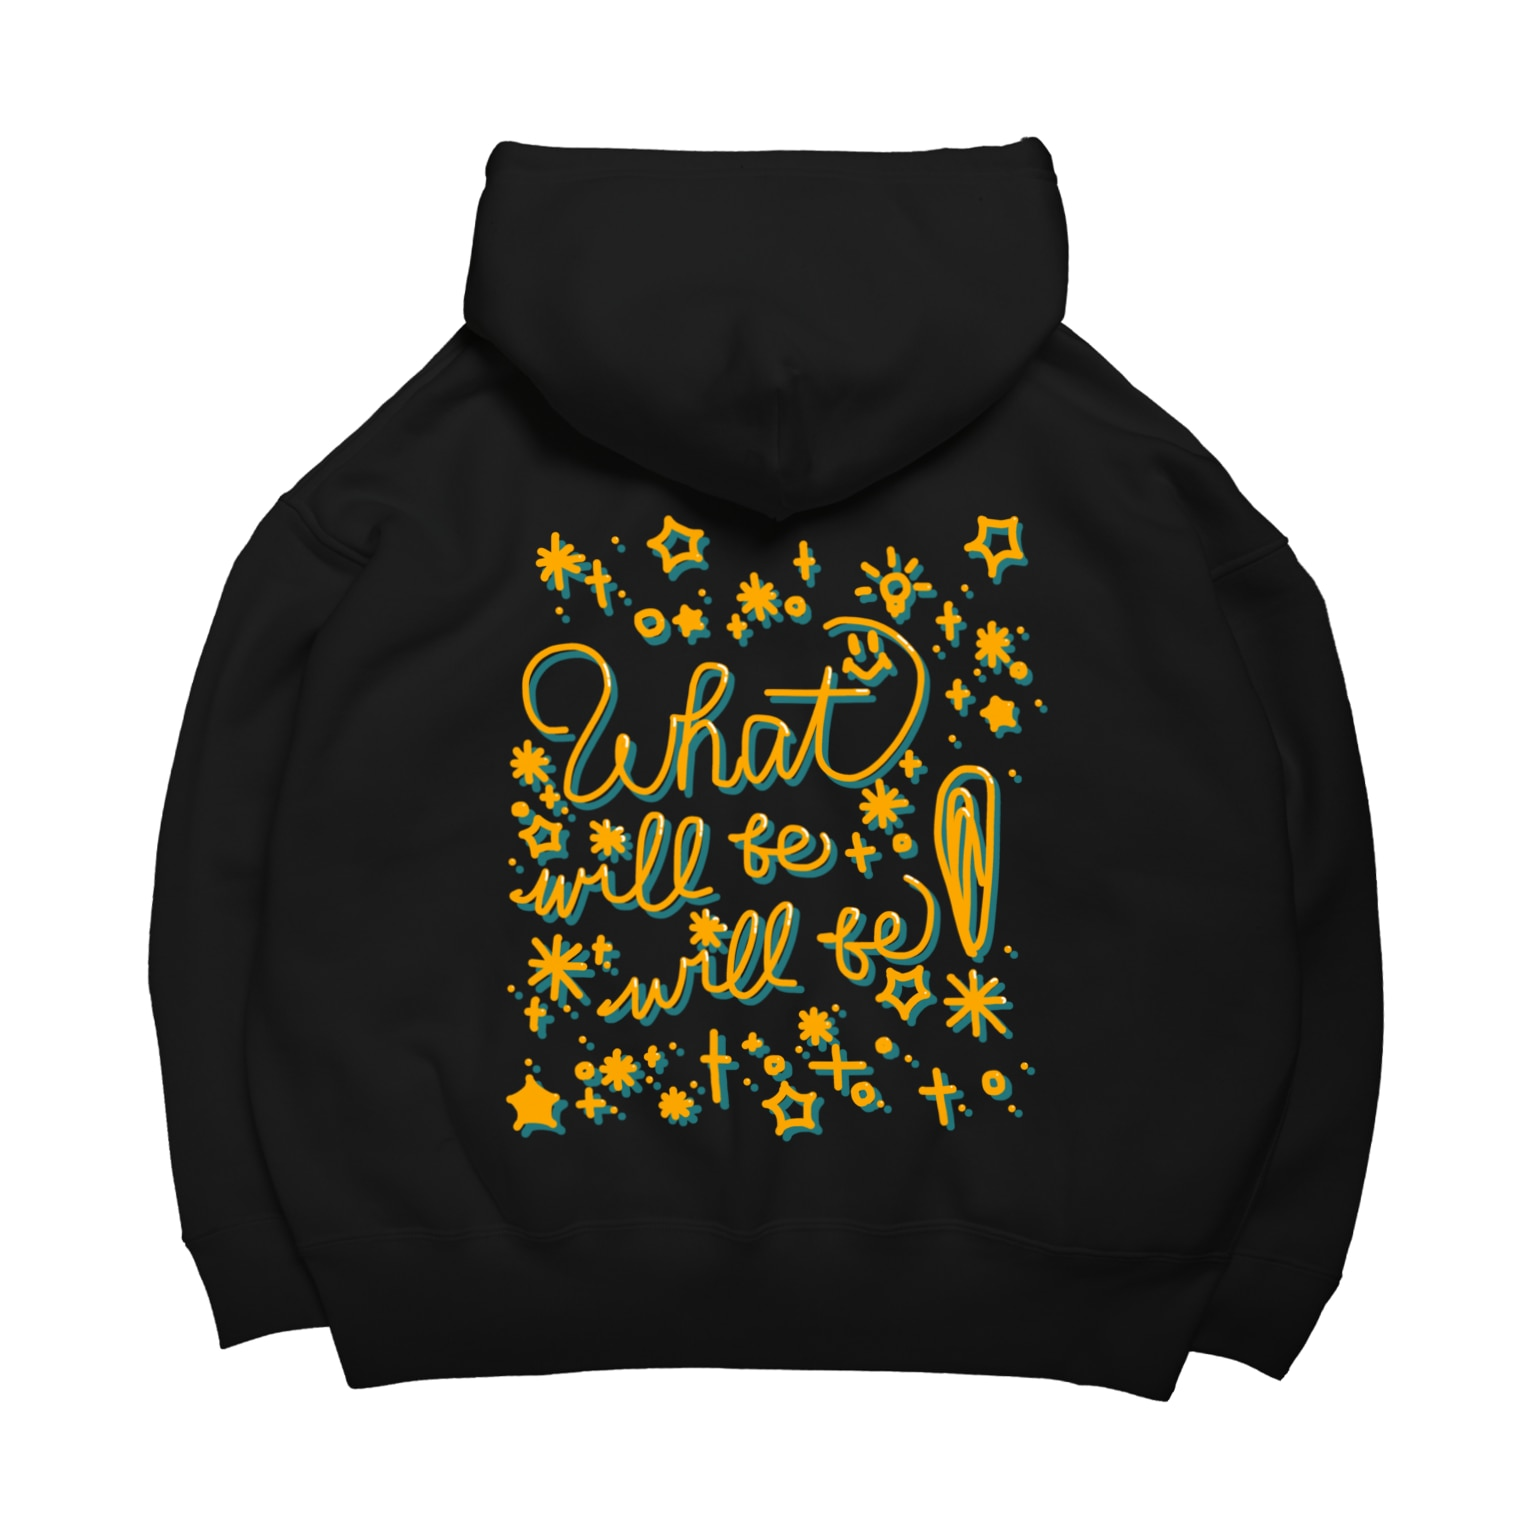 a-bow's workshopのWhat will be will be ! Big Hoodies